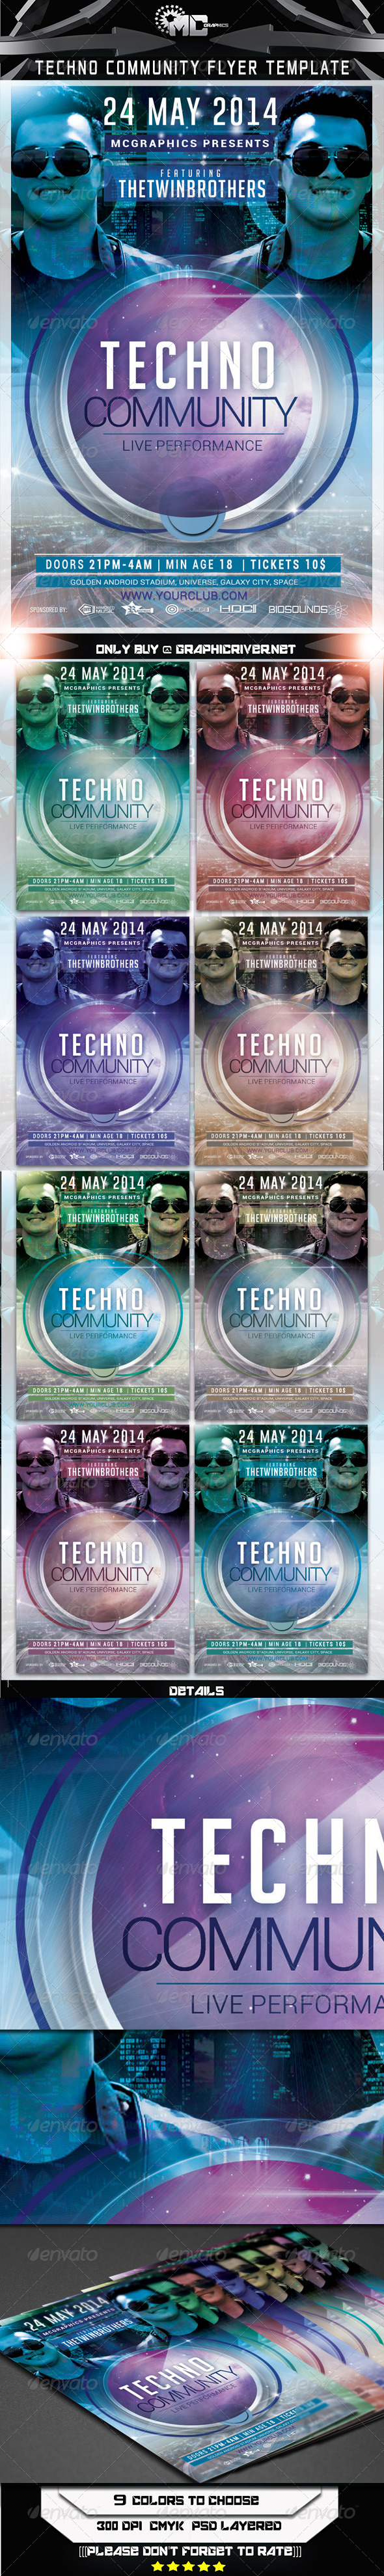 Techno Community Flyer Template - Flyers Print Templates